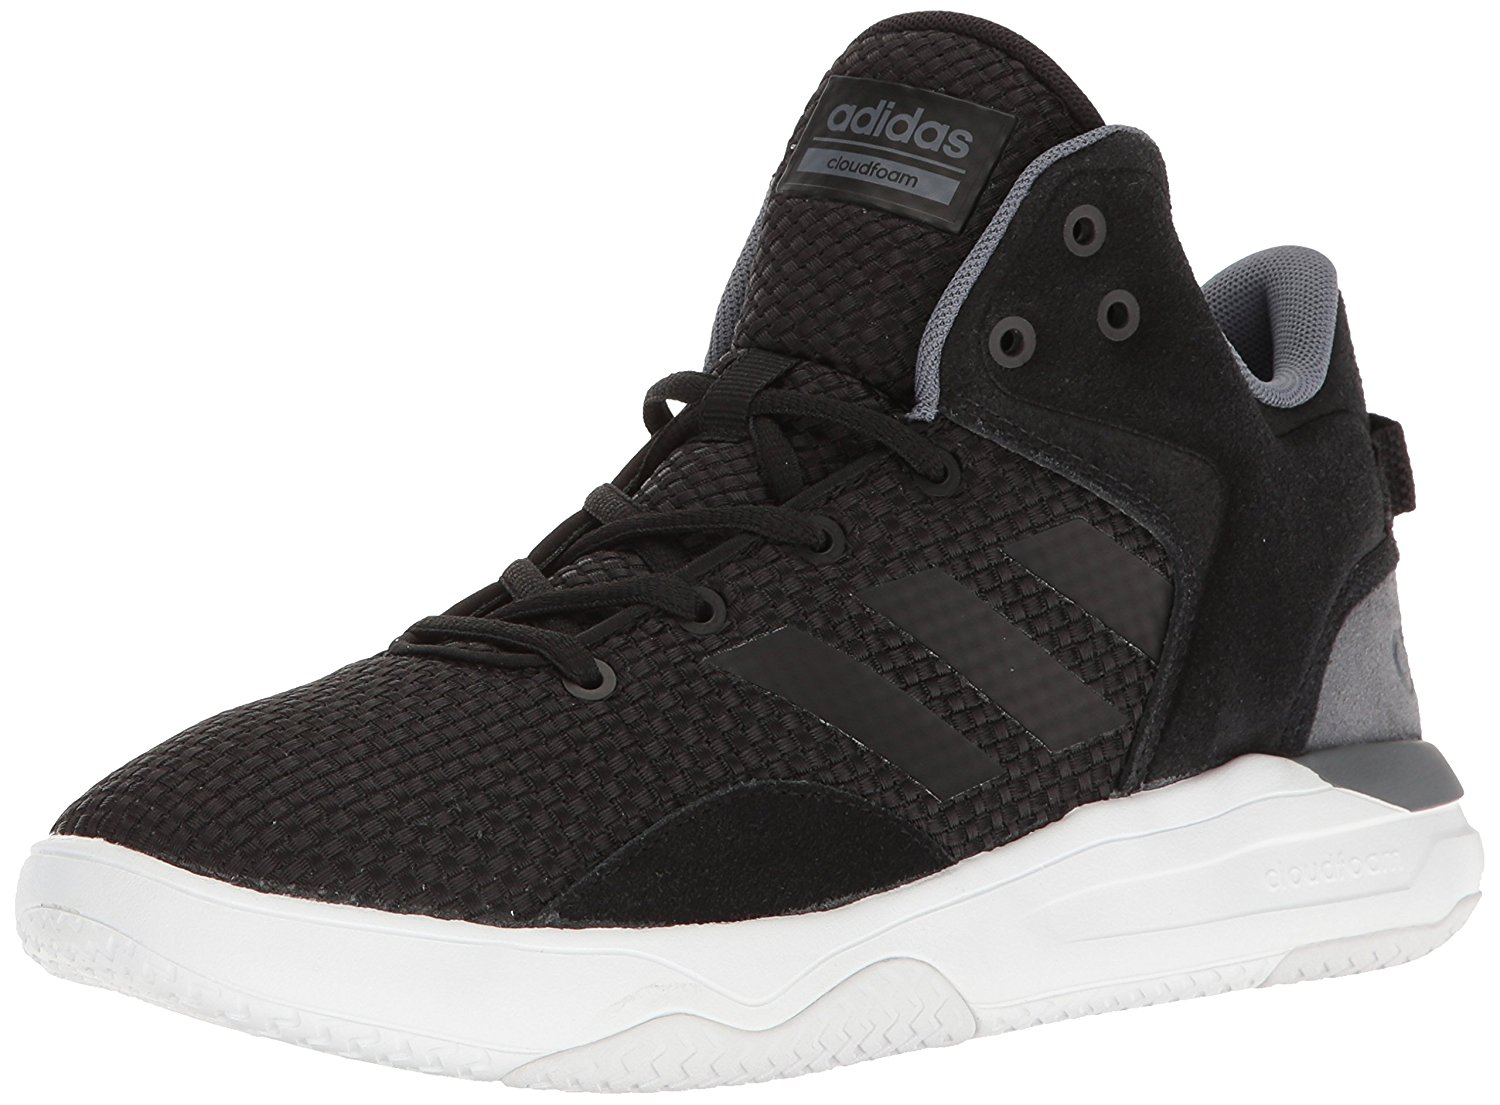 5141b4f0a2 adidas Men s Cloudfoam Revival Mid Basketball Shoes, Black Onix White, Size  10.5